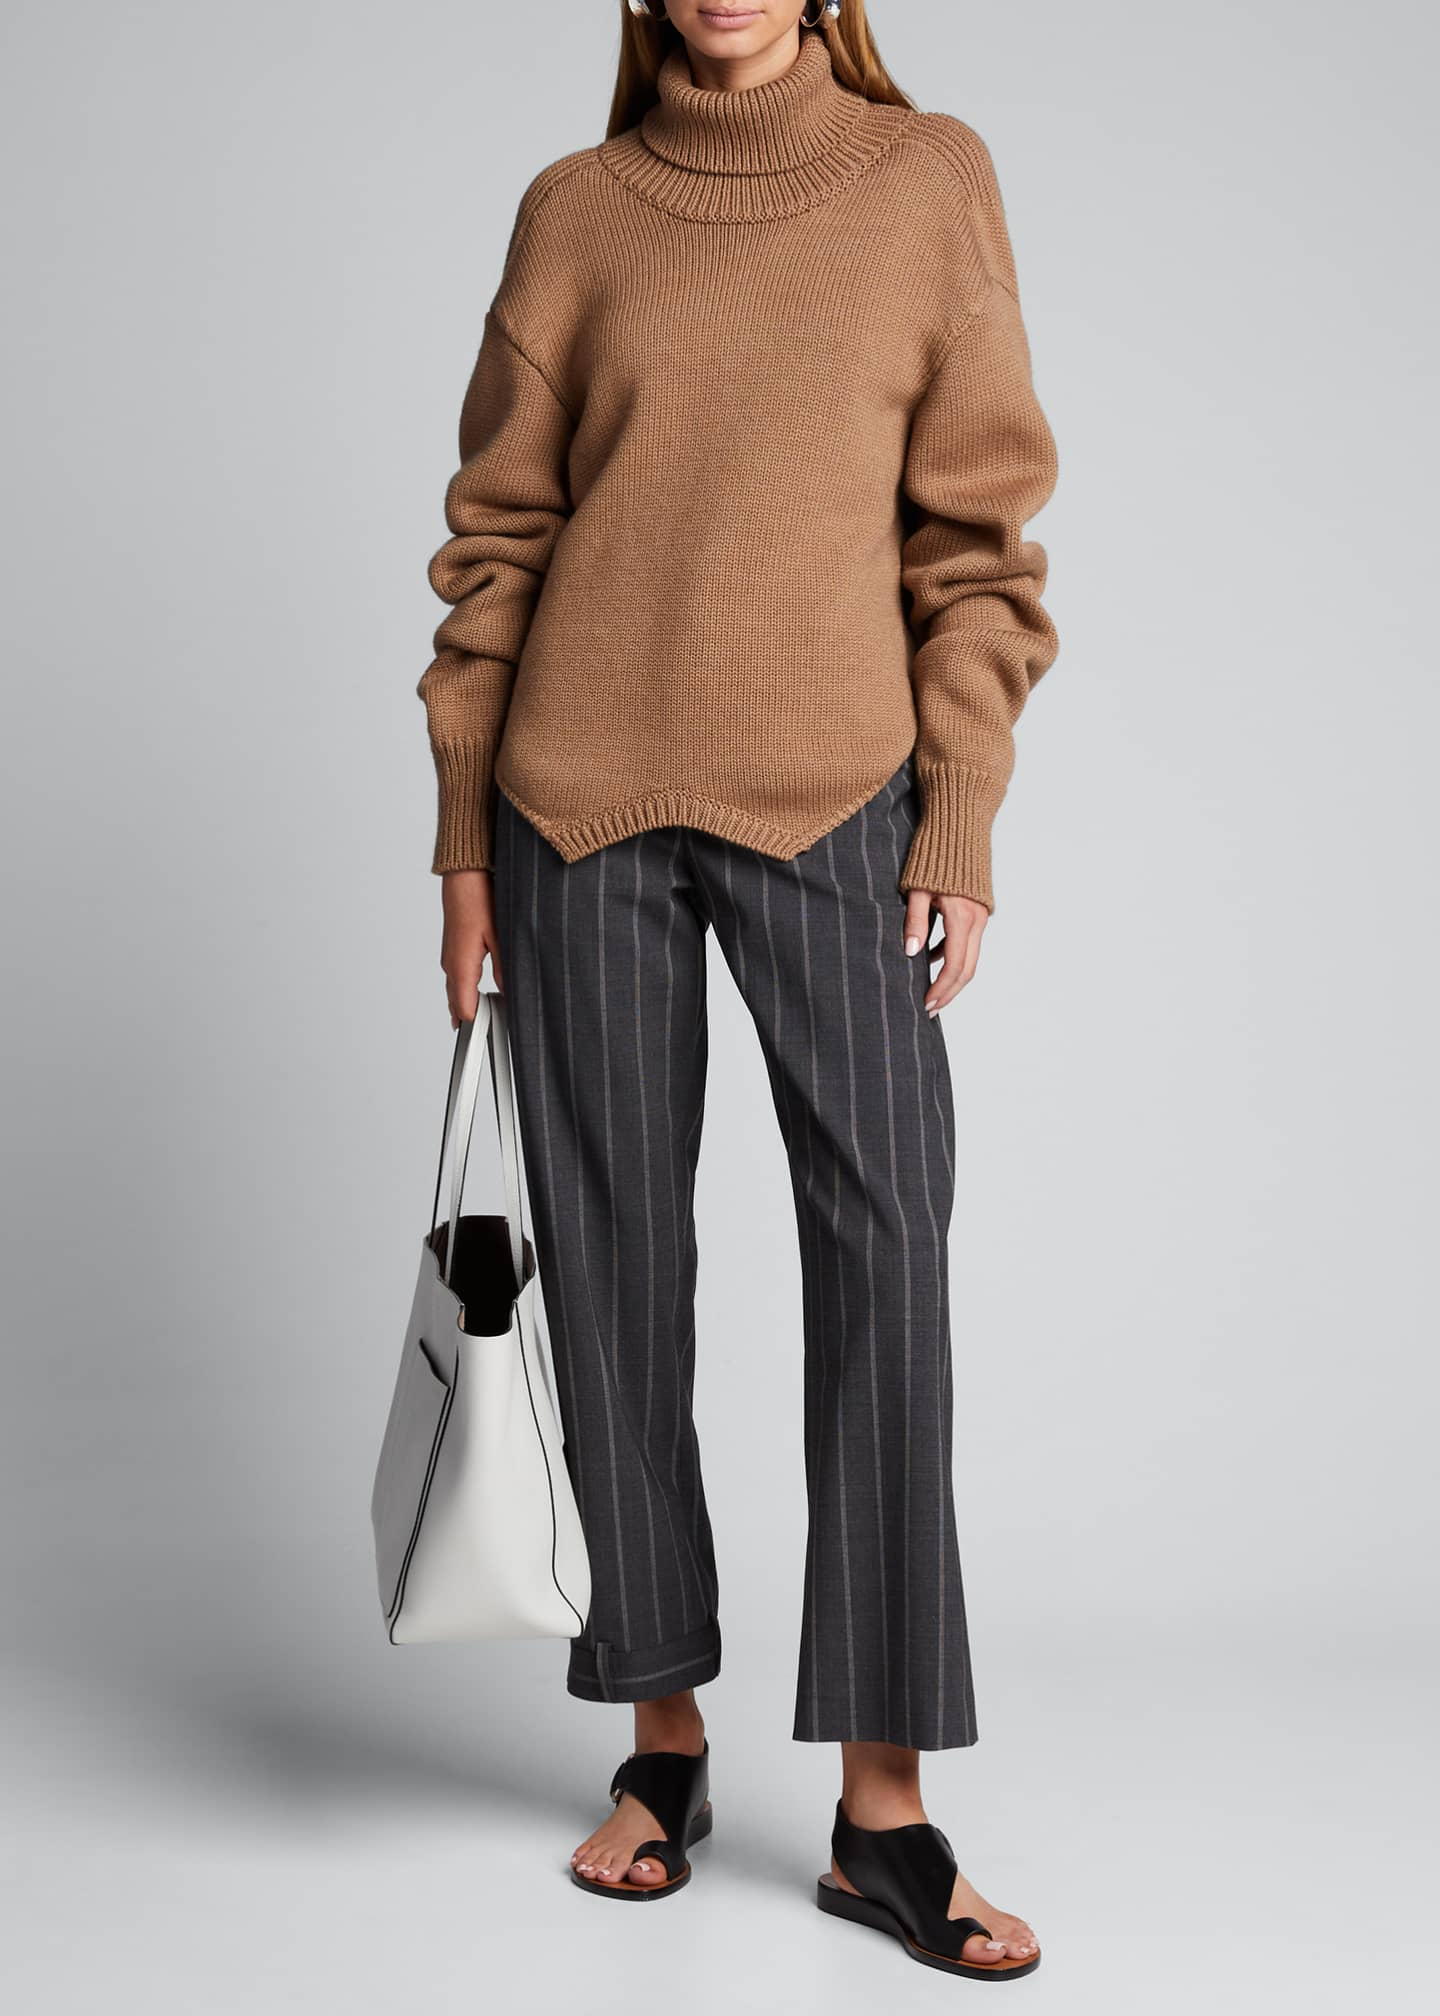 Monse Pinstriped Upside-Down-Leg Pants